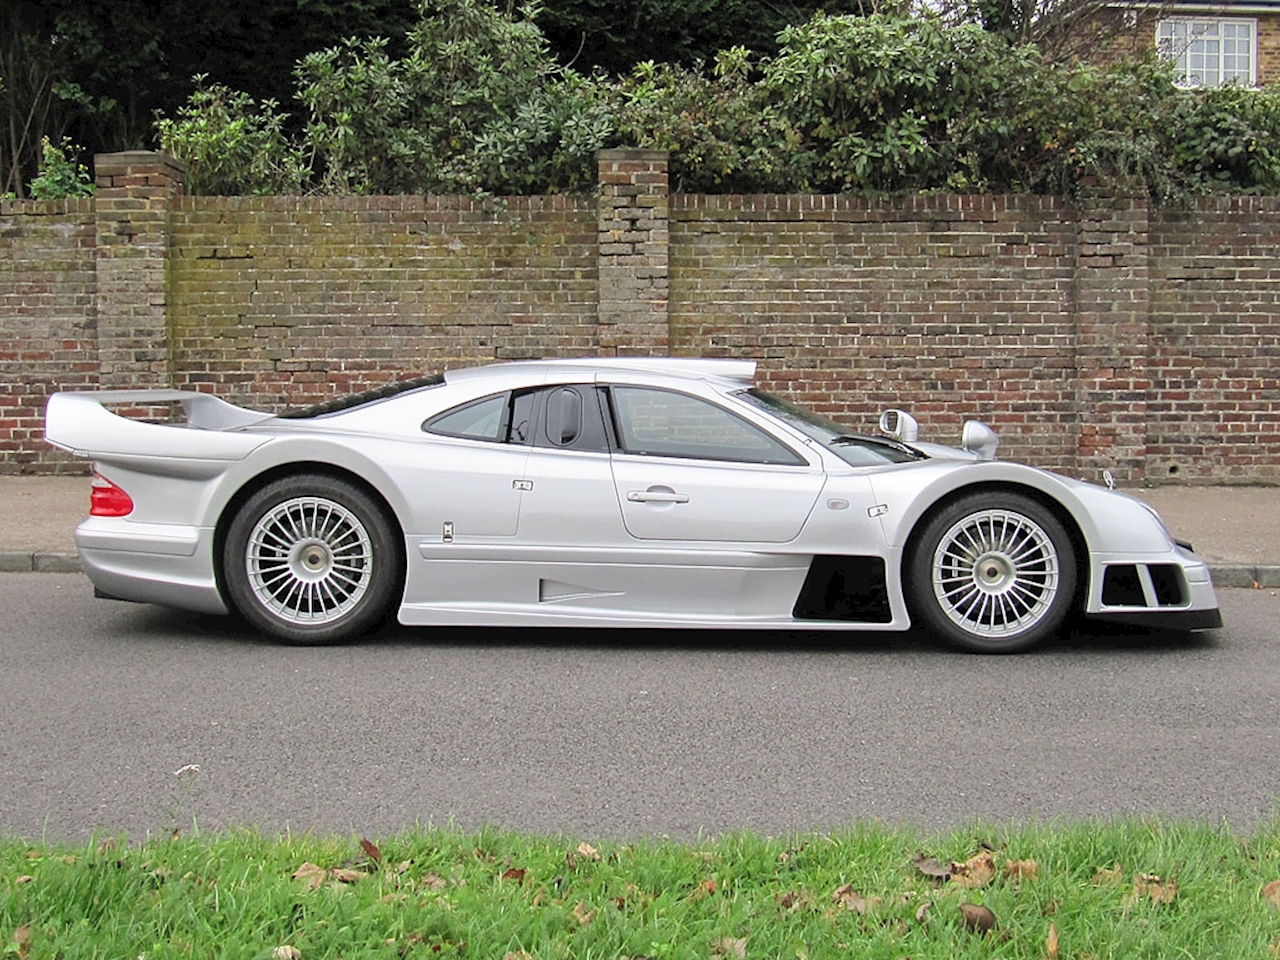 used mercedes clk gtr silver. Black Bedroom Furniture Sets. Home Design Ideas